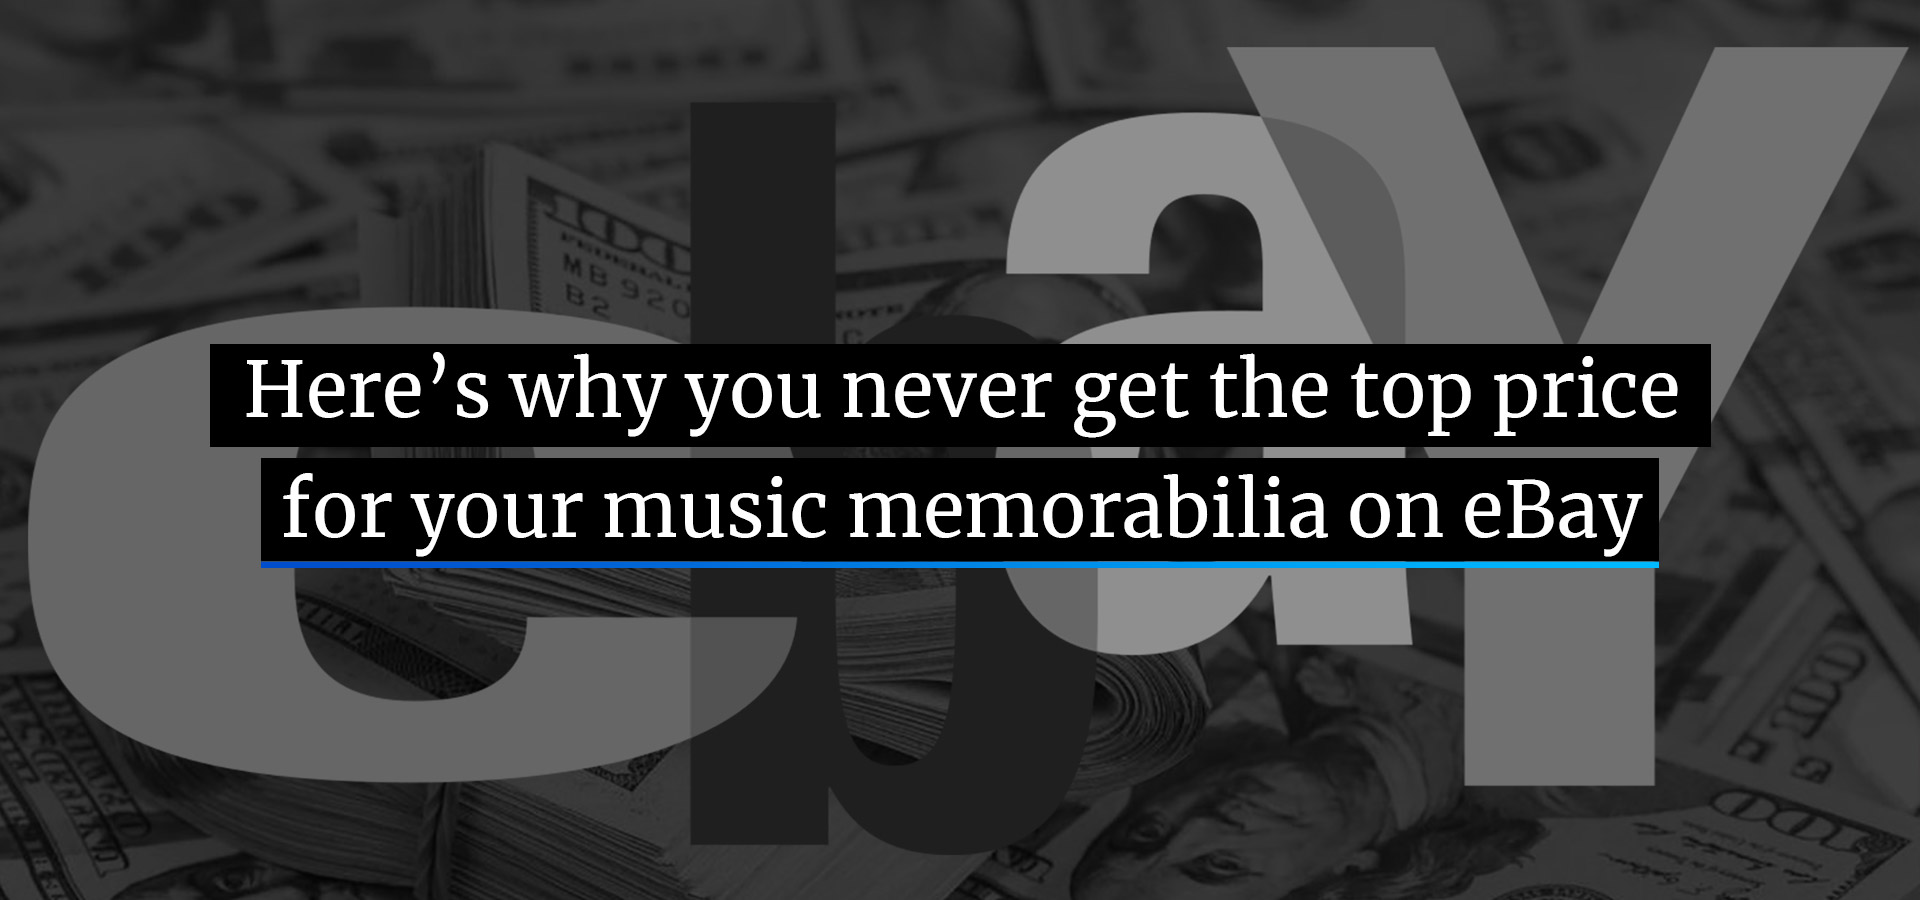 Here's why you never get the top price for your music memorabilia on eBay